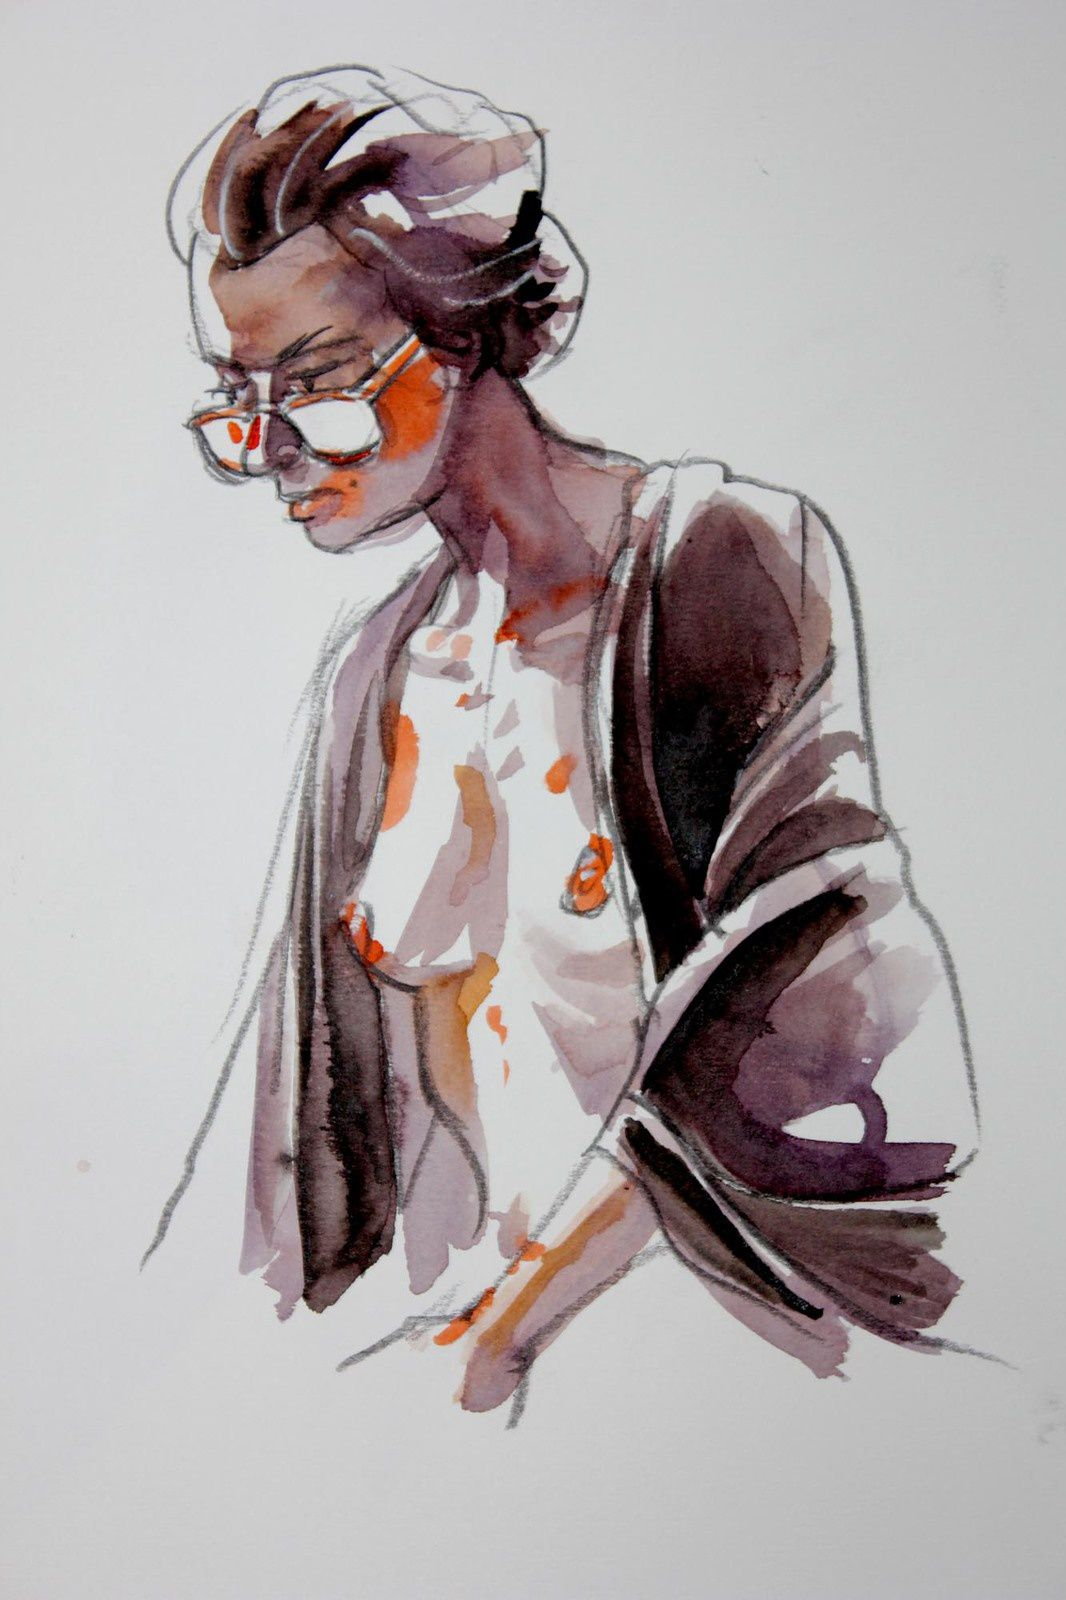 Modèle Vivant : pose de 12 minutes à l'encre aquarelle / Life-drawing : required time of 12 minutes,with brillant watercolour